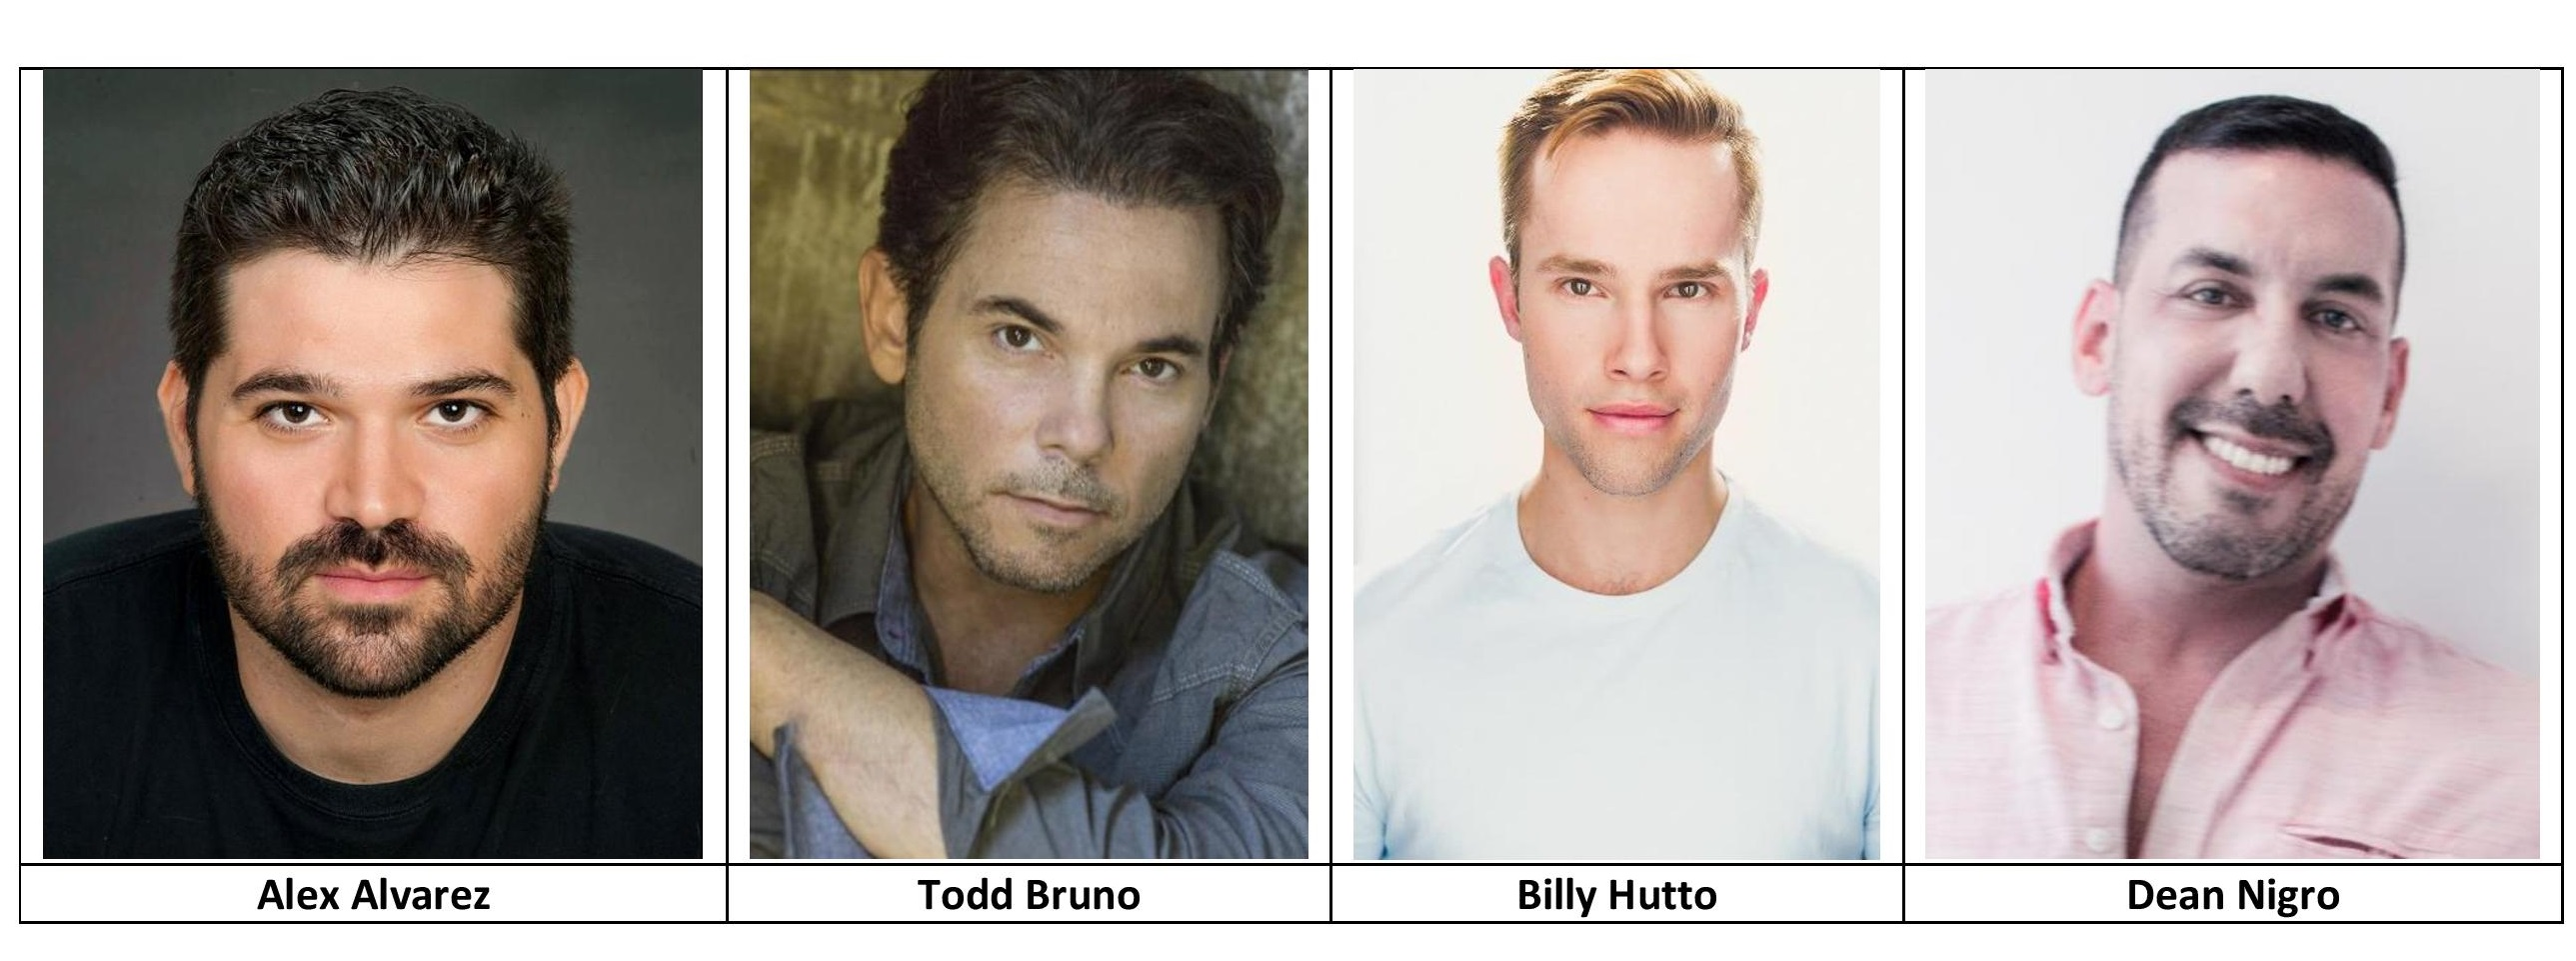 Read More about the Cast on our Facebook page!